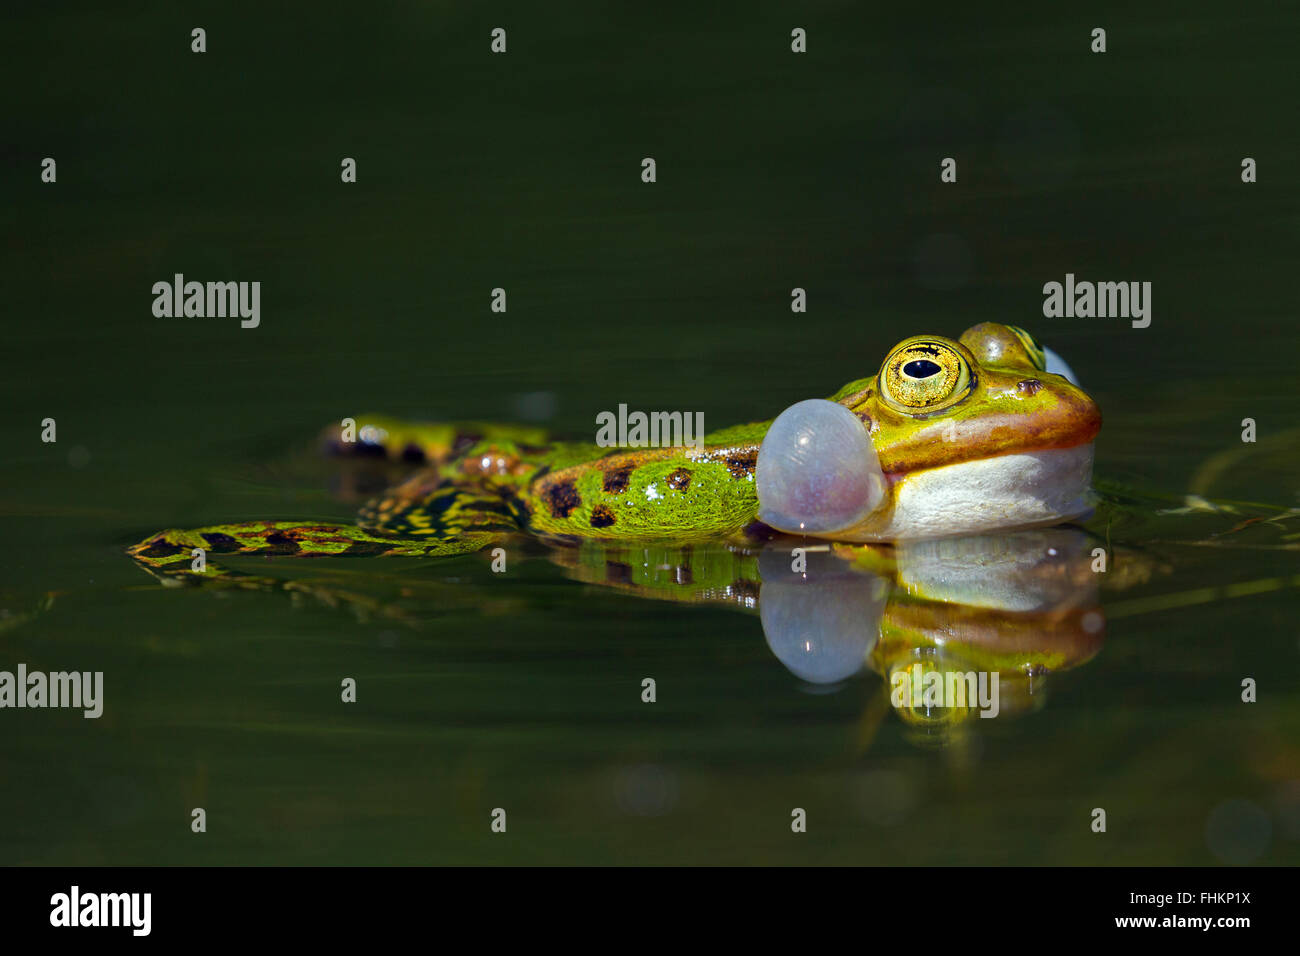 Edible frog / green frog (Pelophylax kl. esculentus / Rana kl. esculenta) male floating in pond showing inflated - Stock Image